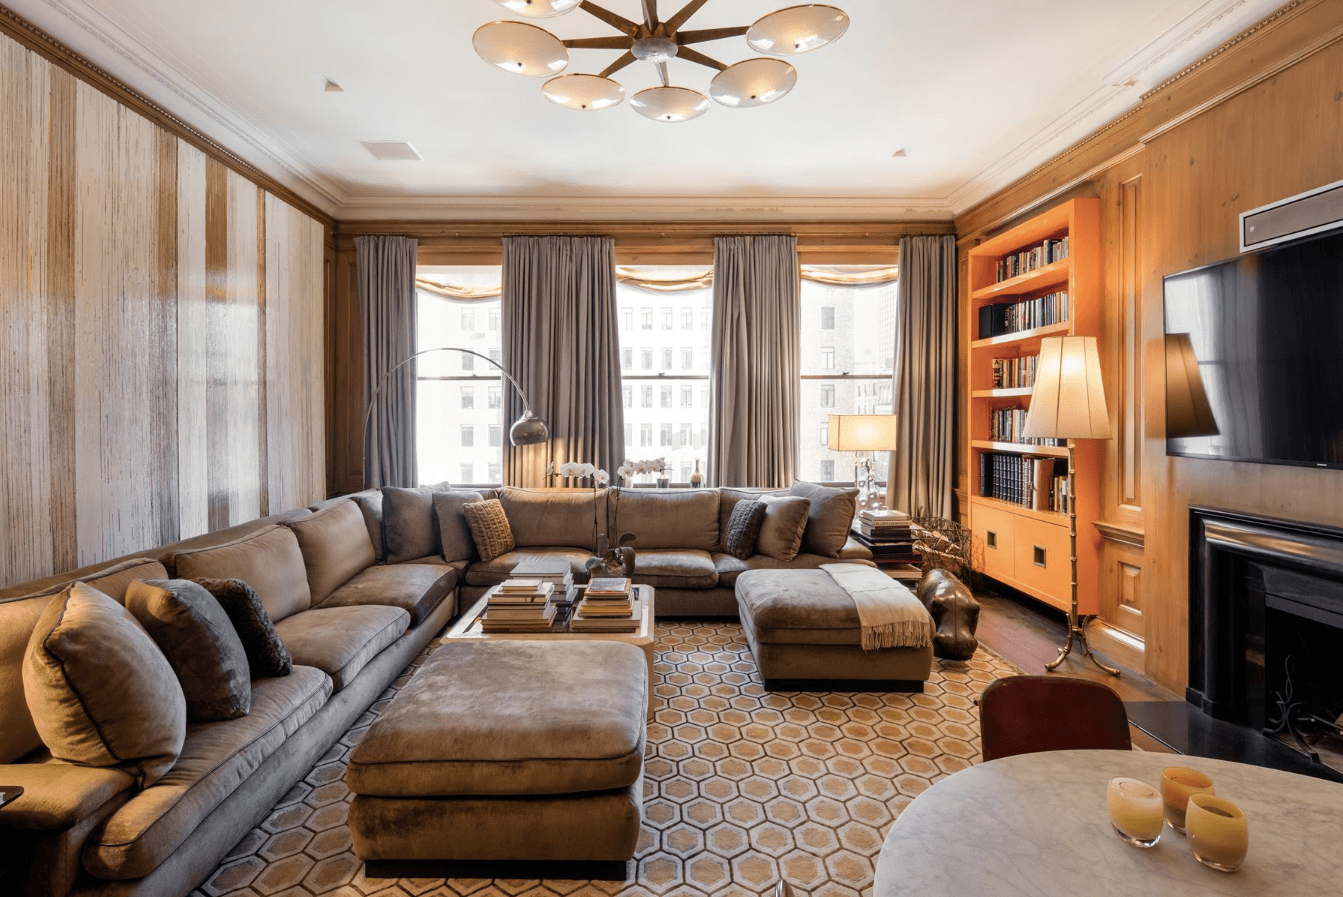 The 740 Park Avenue Co-Op Jacqueline Kennedy Onassis's Spent Her Childhood Sold for $25.25 Million